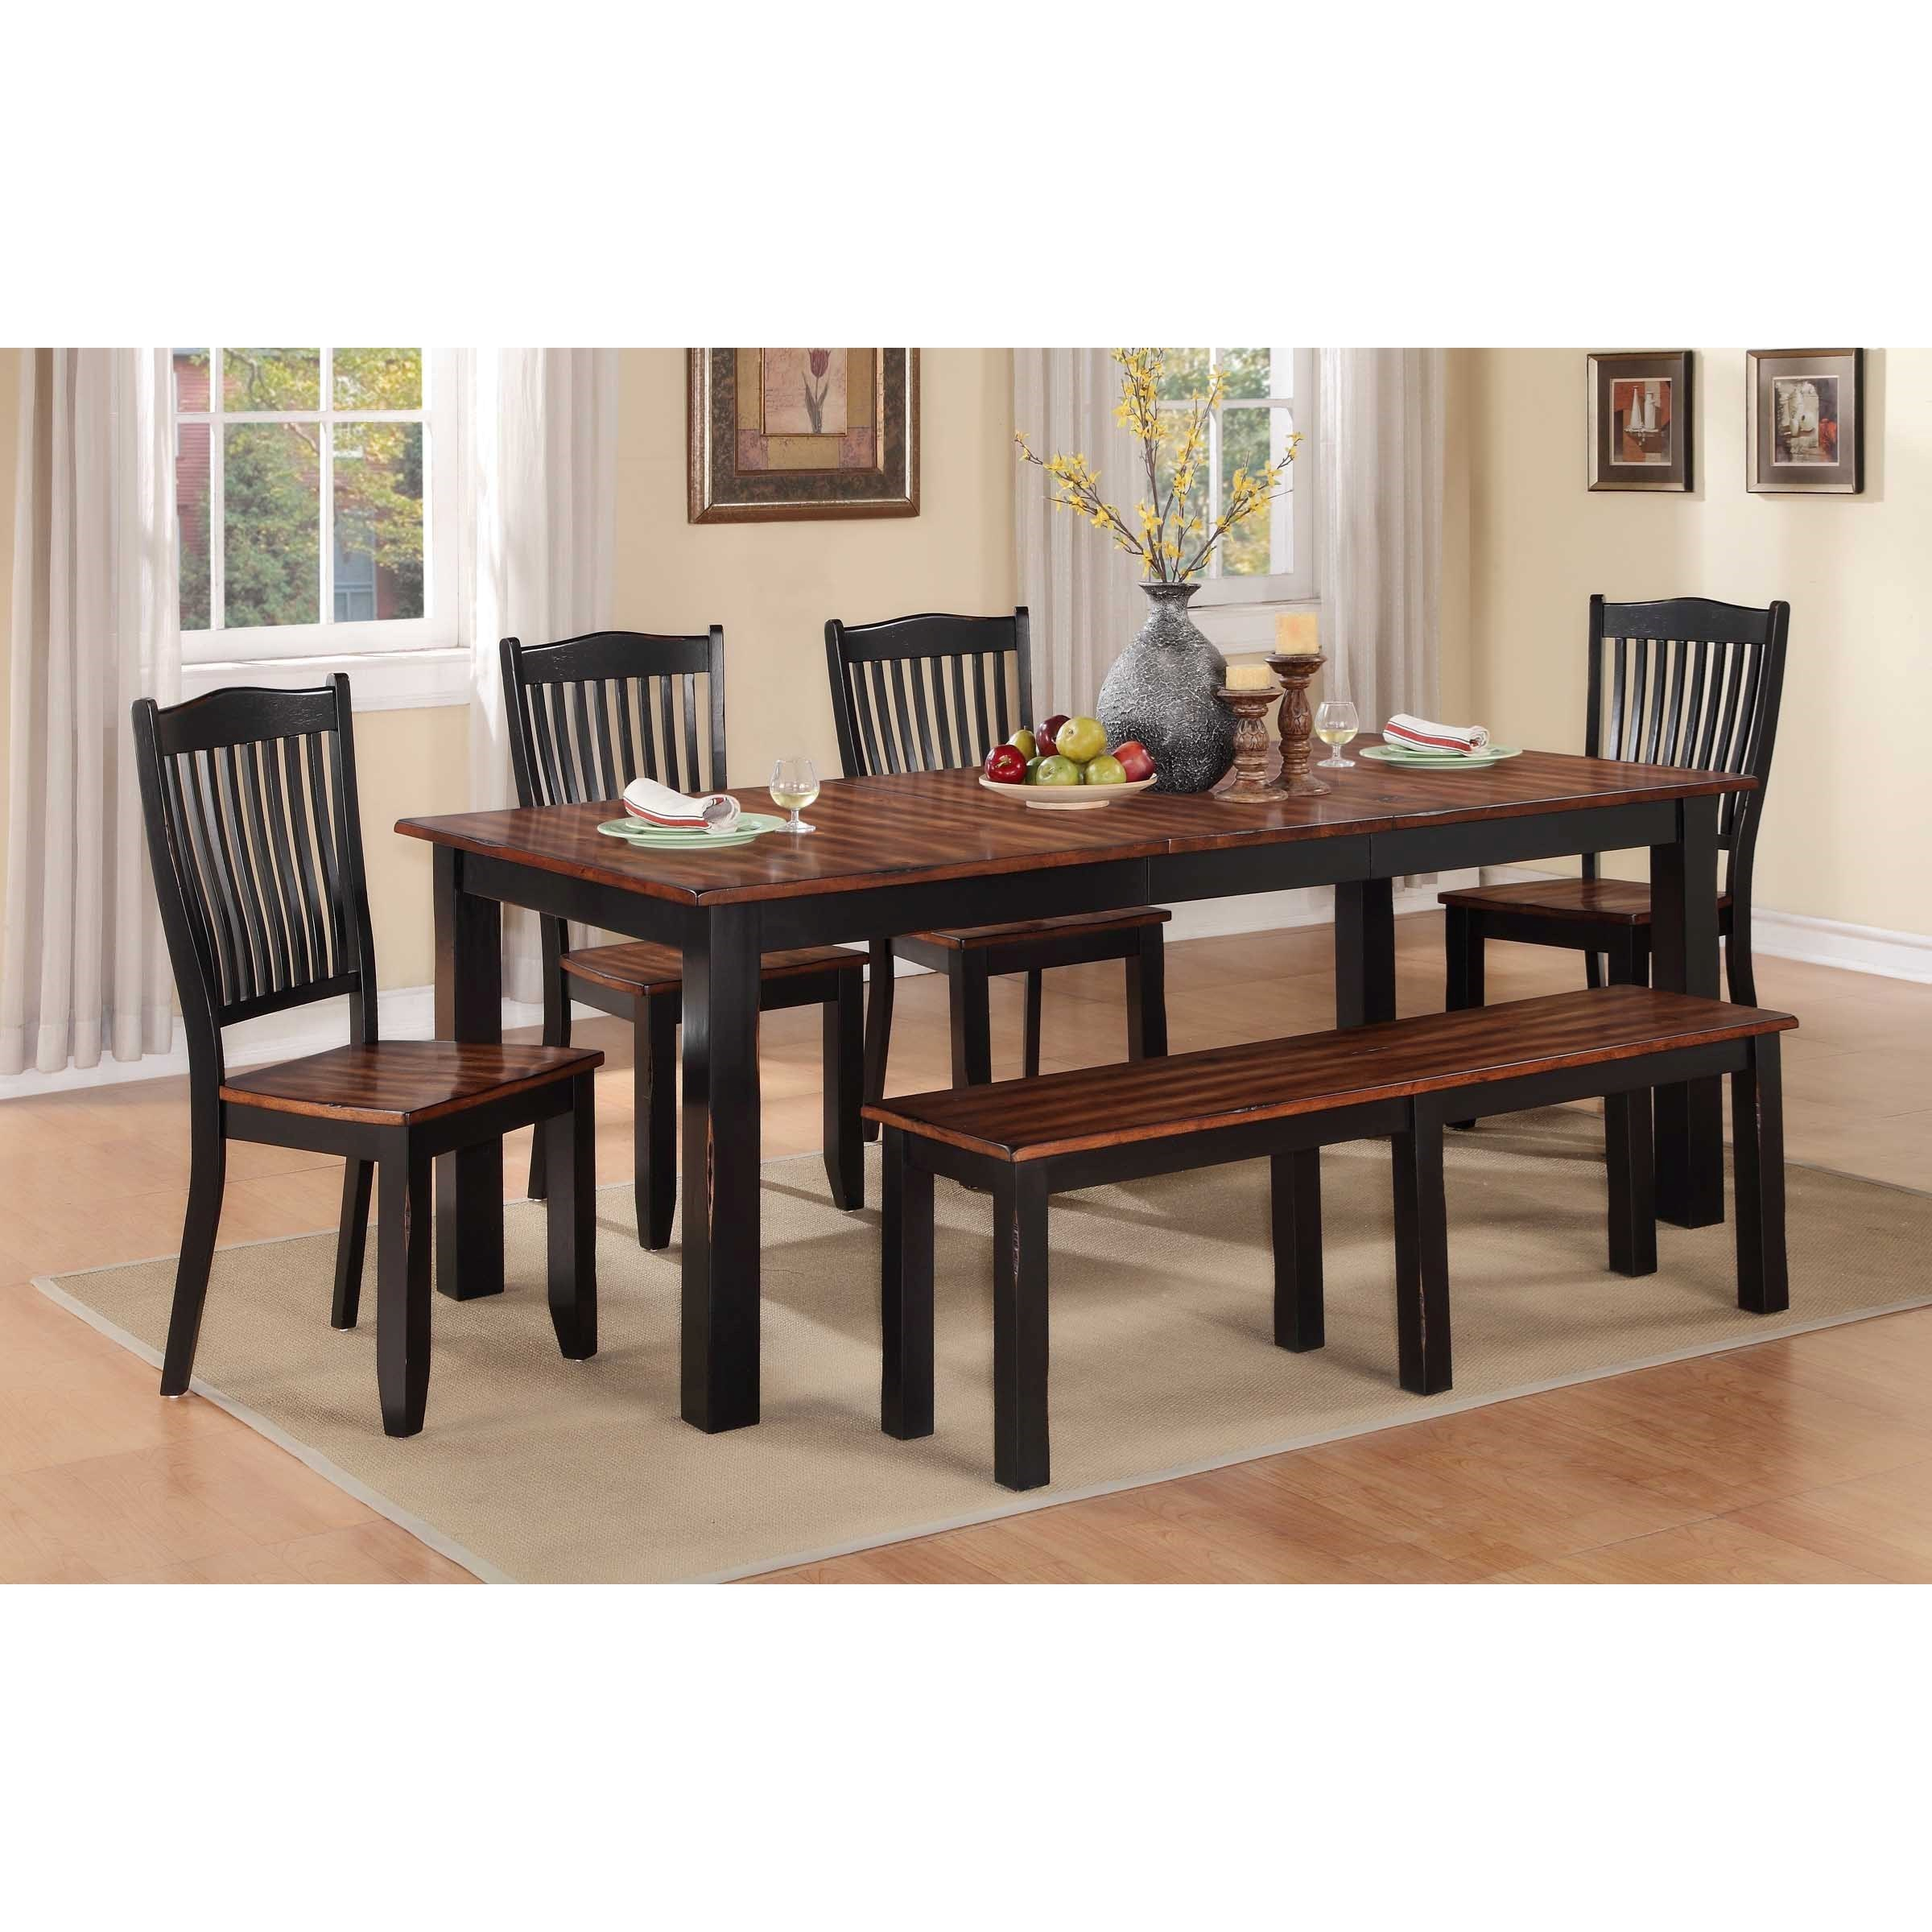 Carson 6 Piece Dining Set With Bench In Current Carson Counter Height Tables (View 12 of 25)